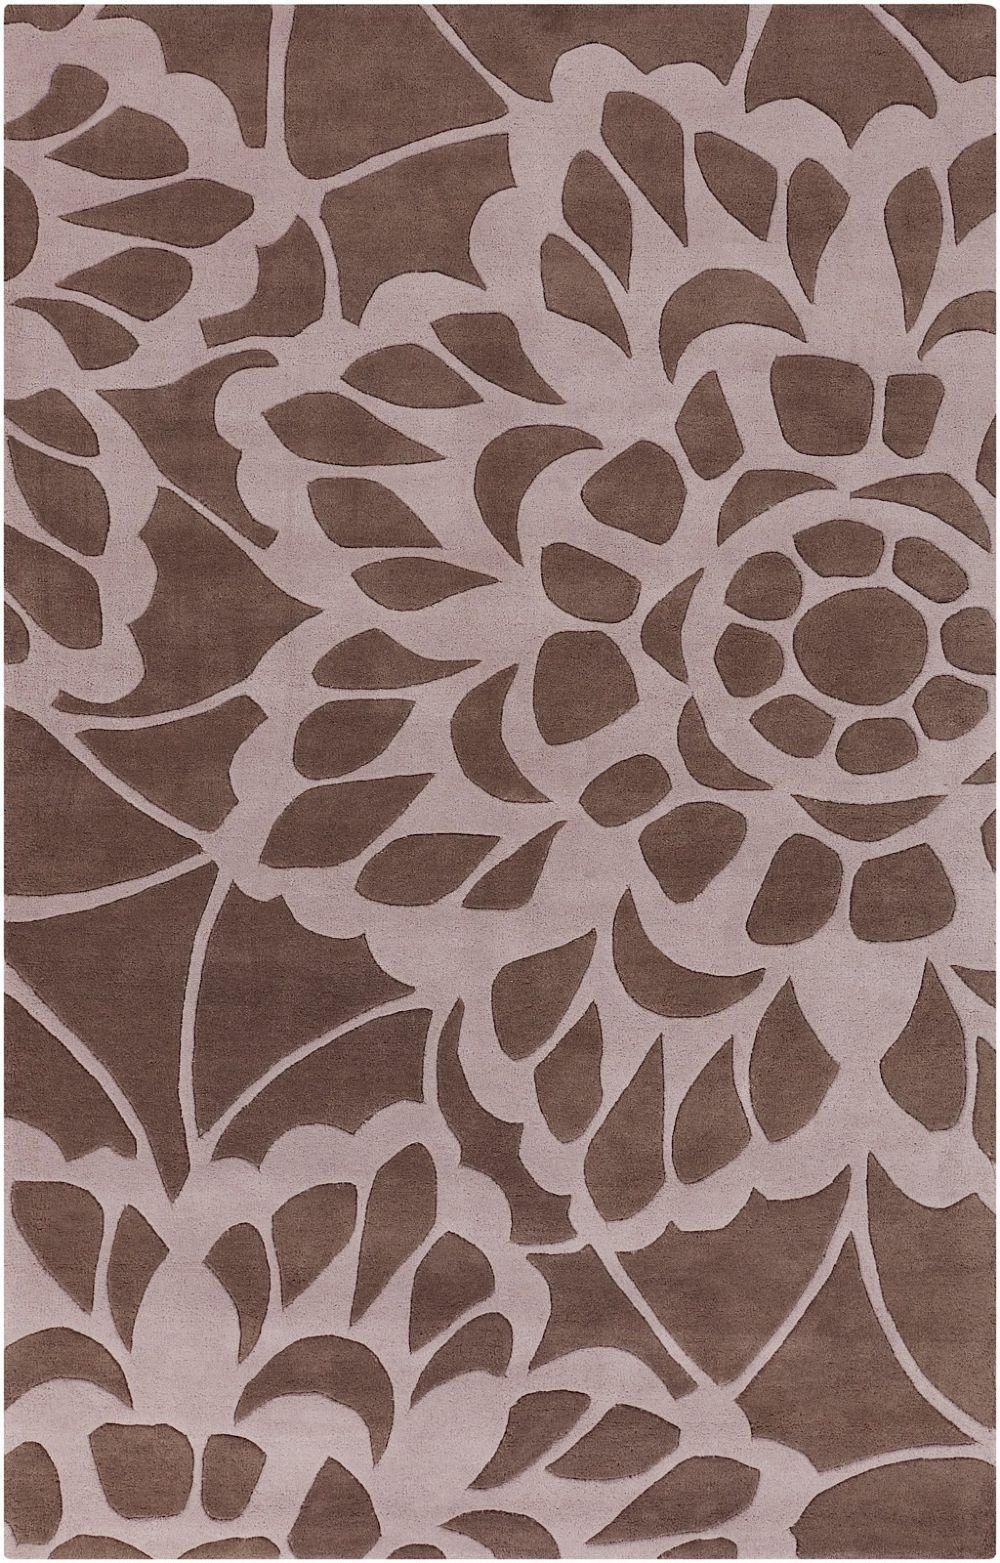 surya lace transitional area rug collection